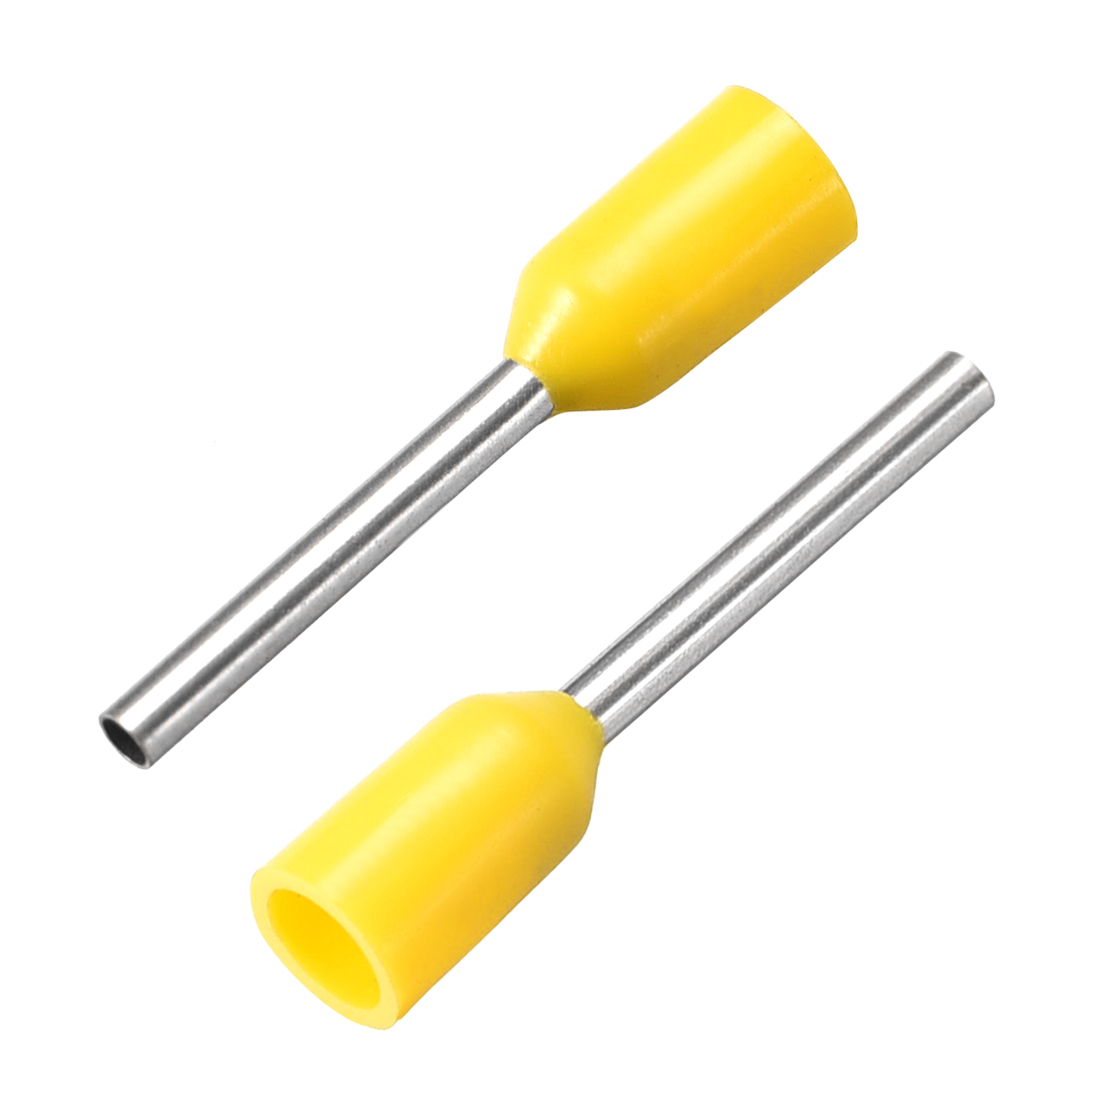 VE1510 Cord Pin End Wire Connector Electrical Crimp Terminal AWG16 Yellow 100Pcs